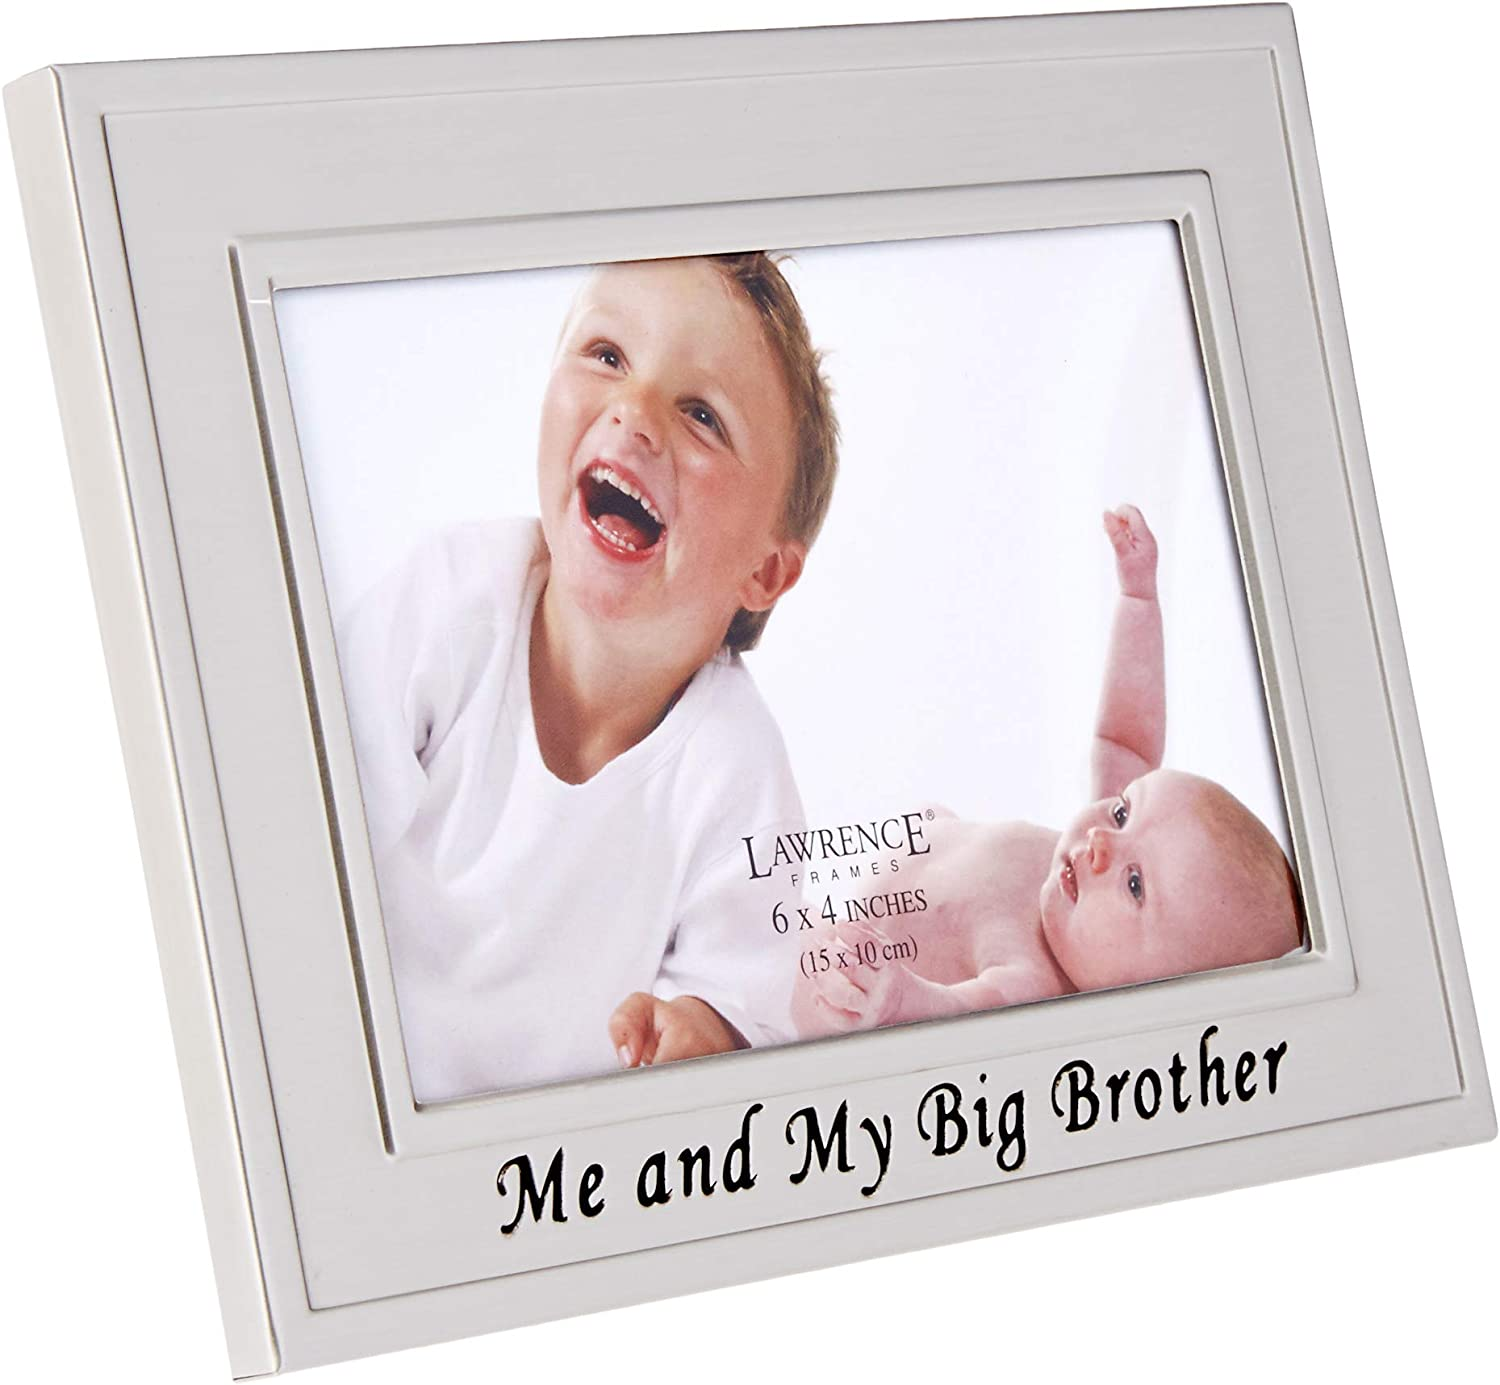 CR Gibson Super Big Brother Of...Blue//white 2 Pics Big Brother Picture Frame